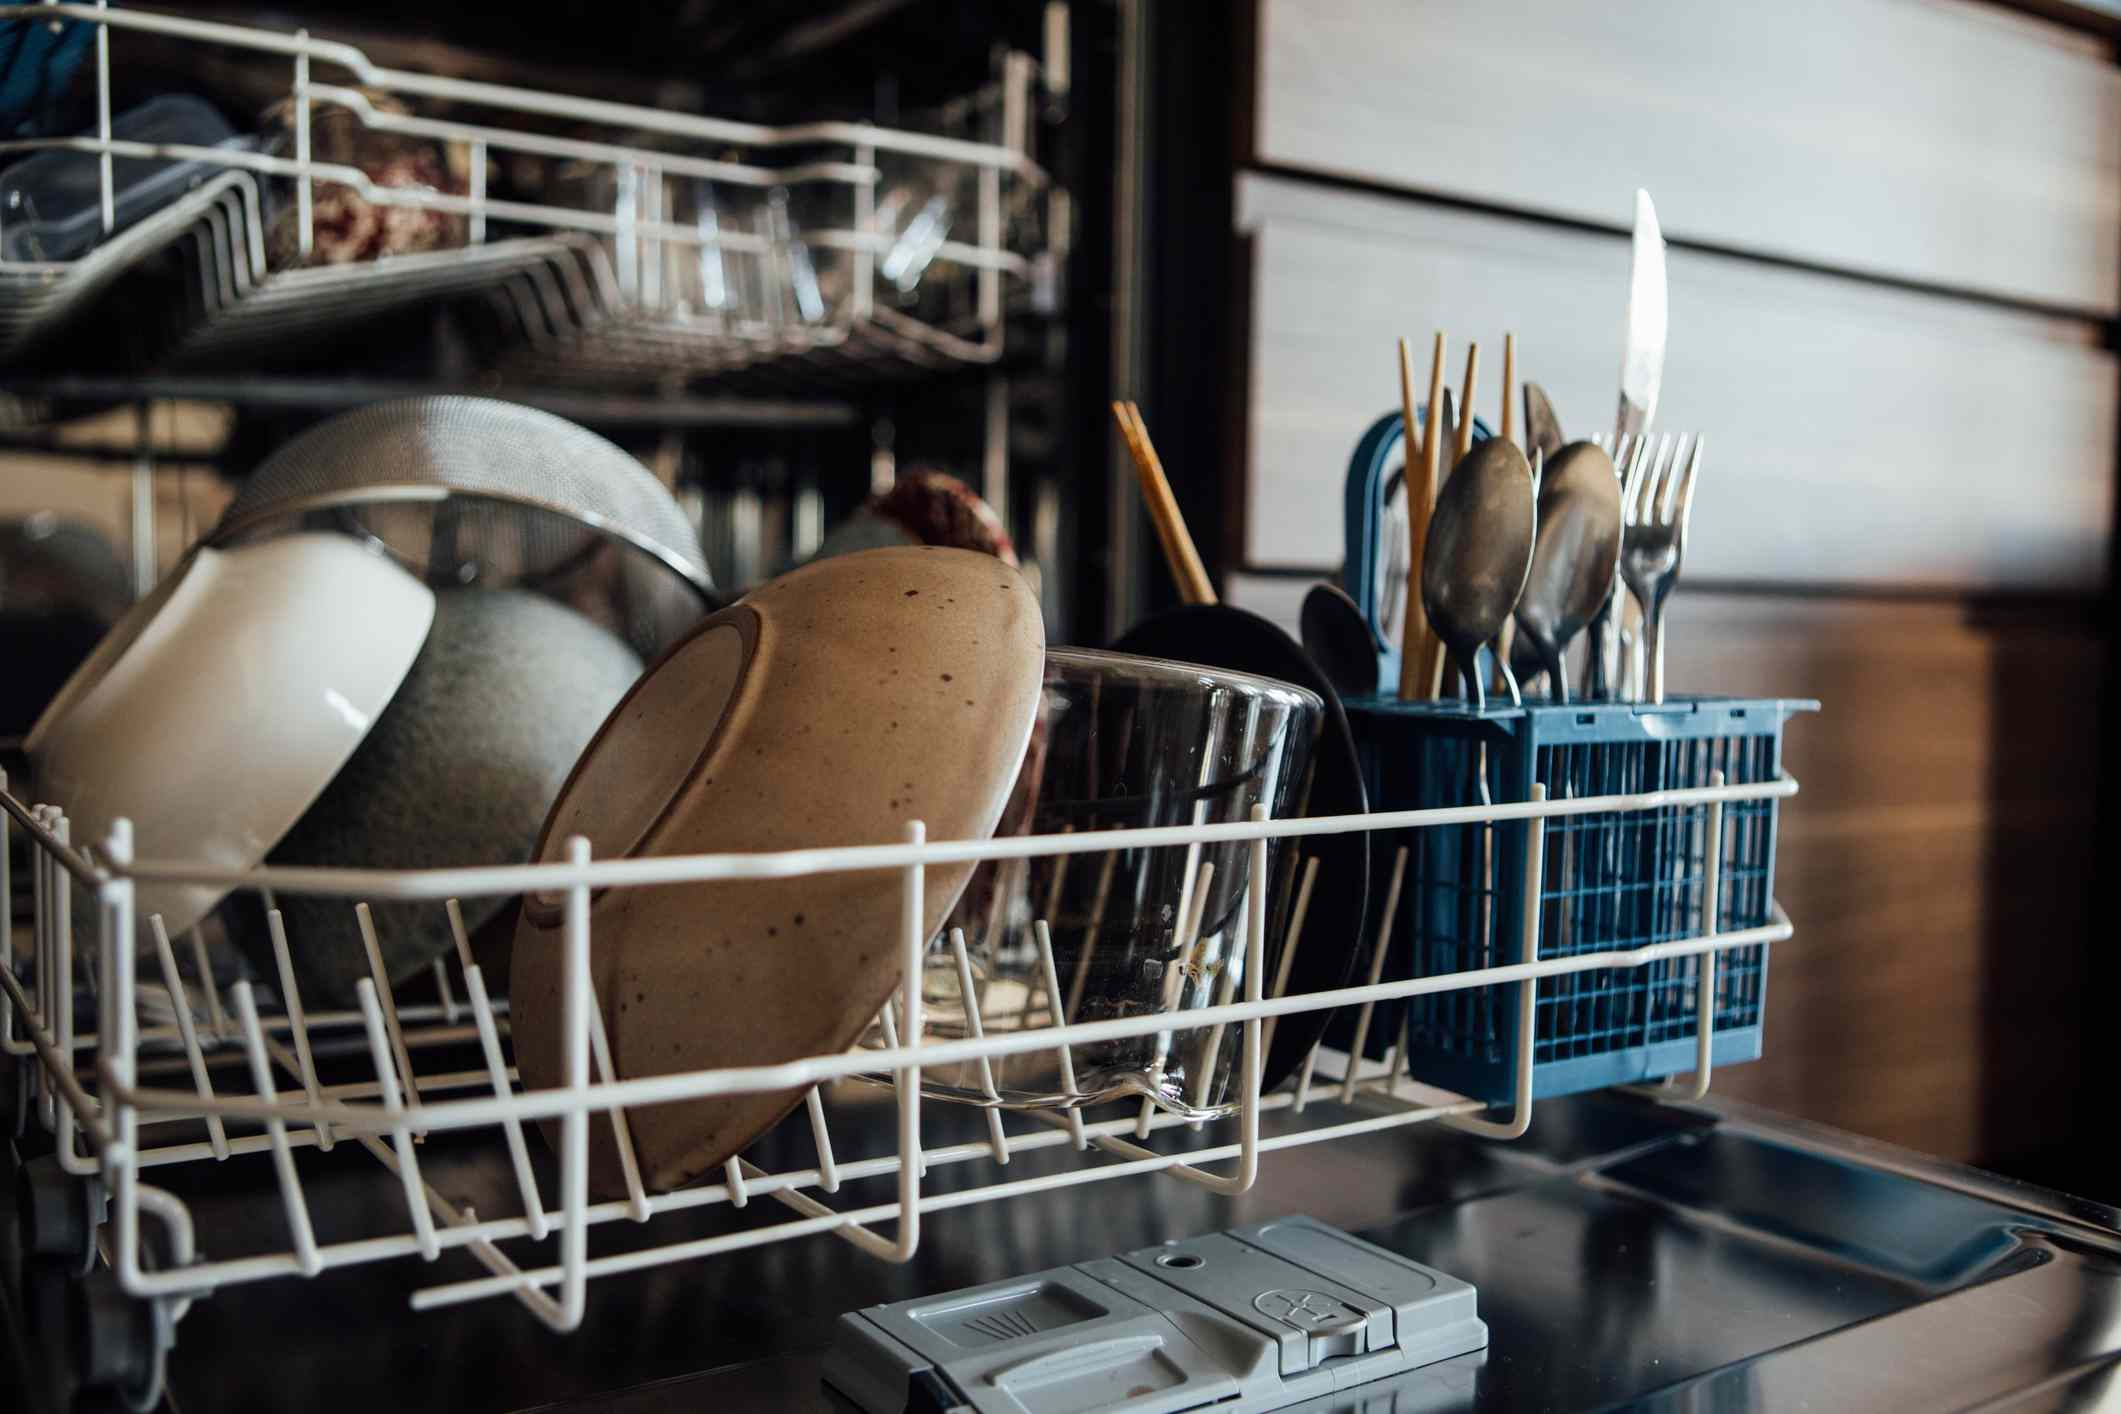 clean dishes in an opened dishwasher